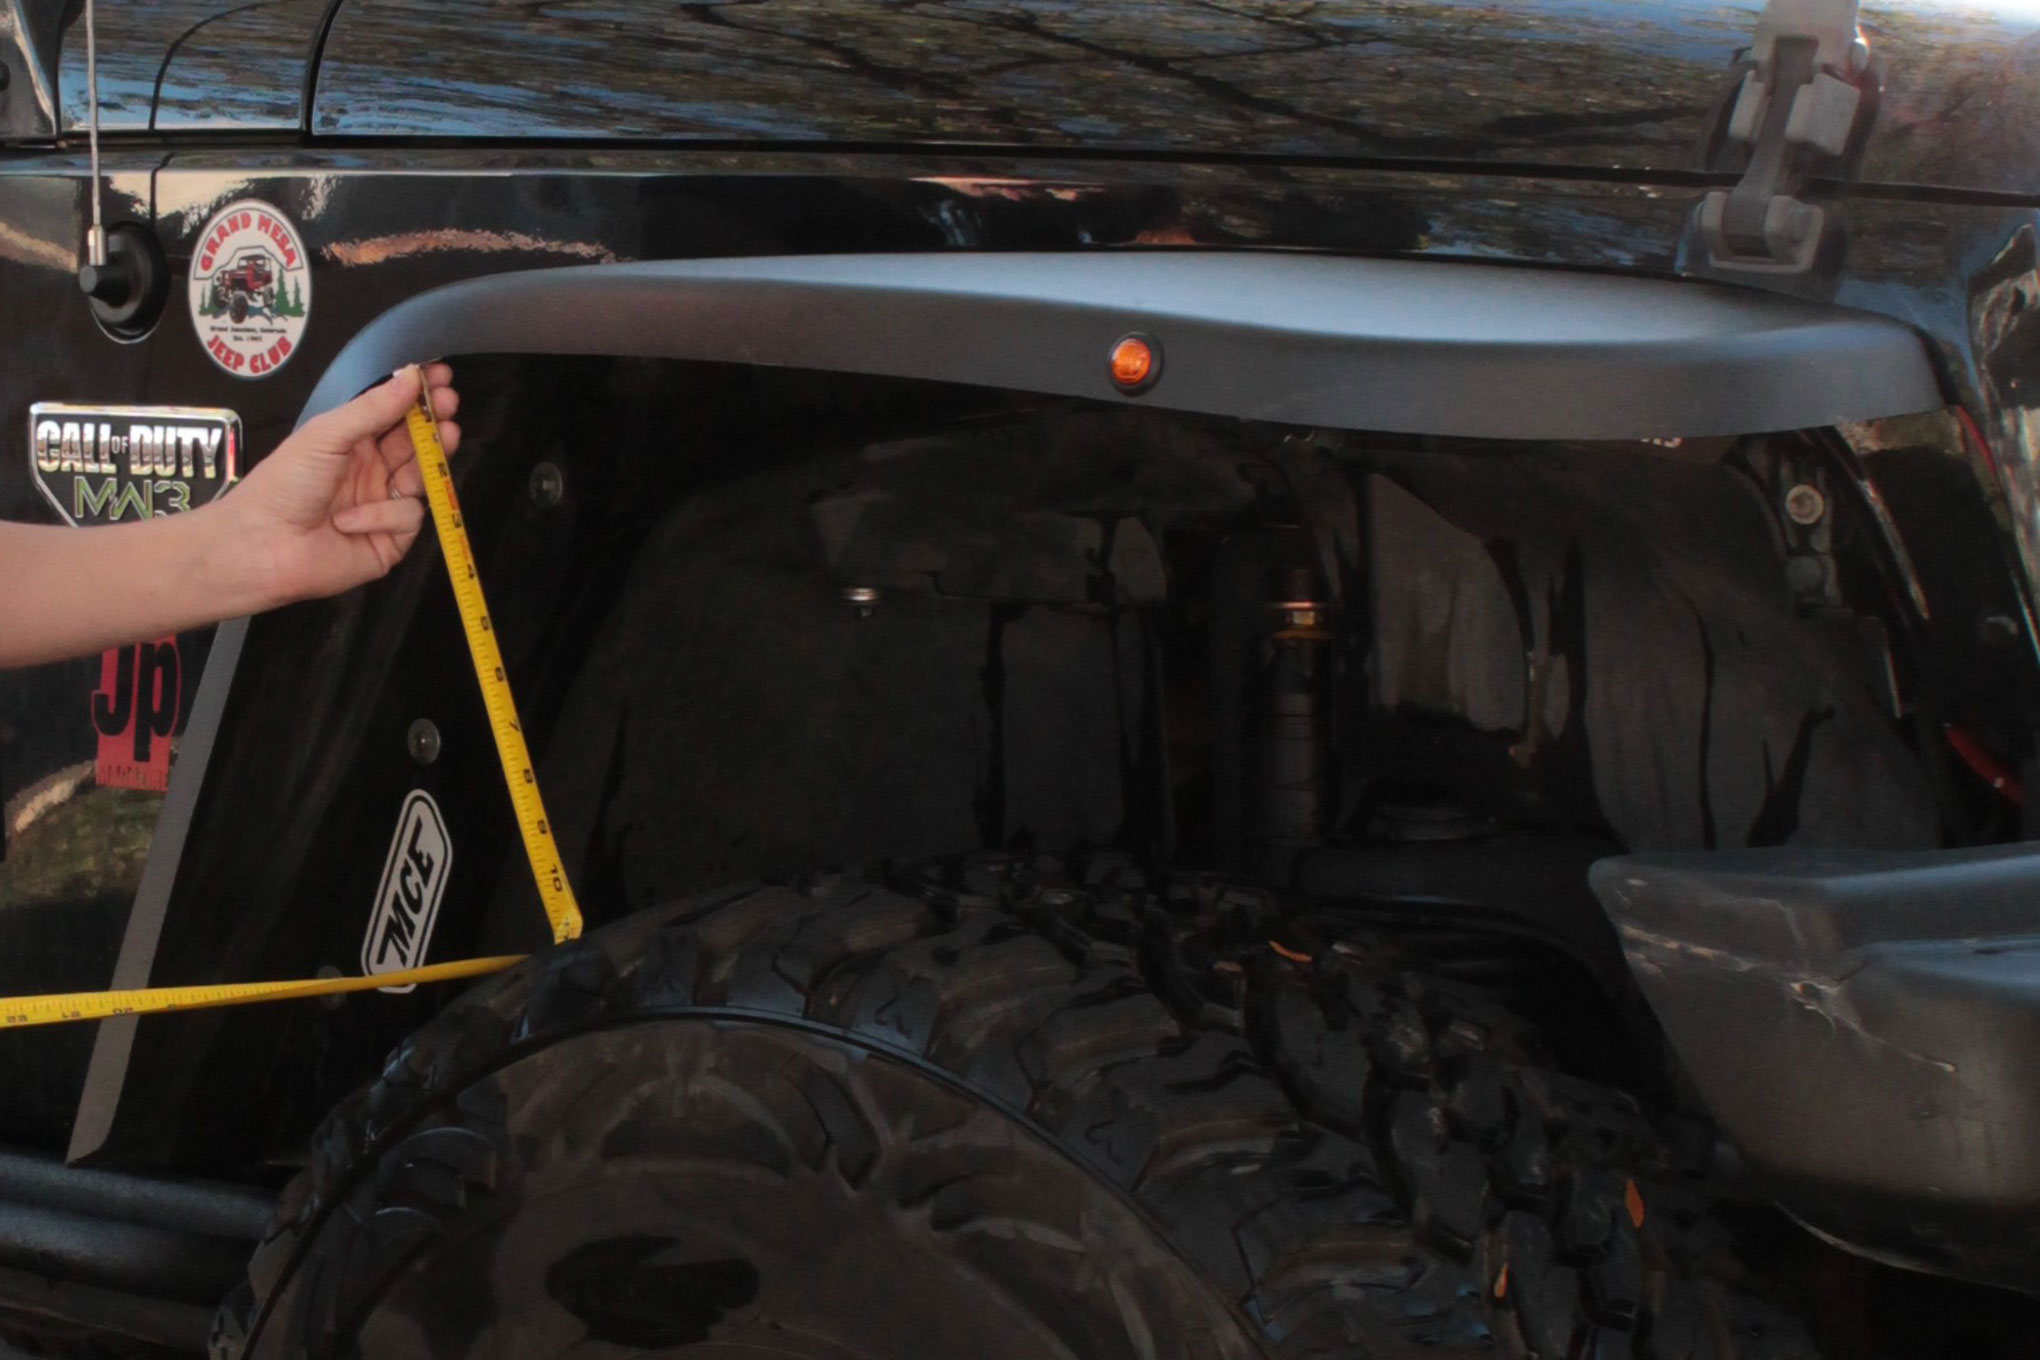 Katie gets Flexible With new Fenders for her Jeep - Catching up with Katie